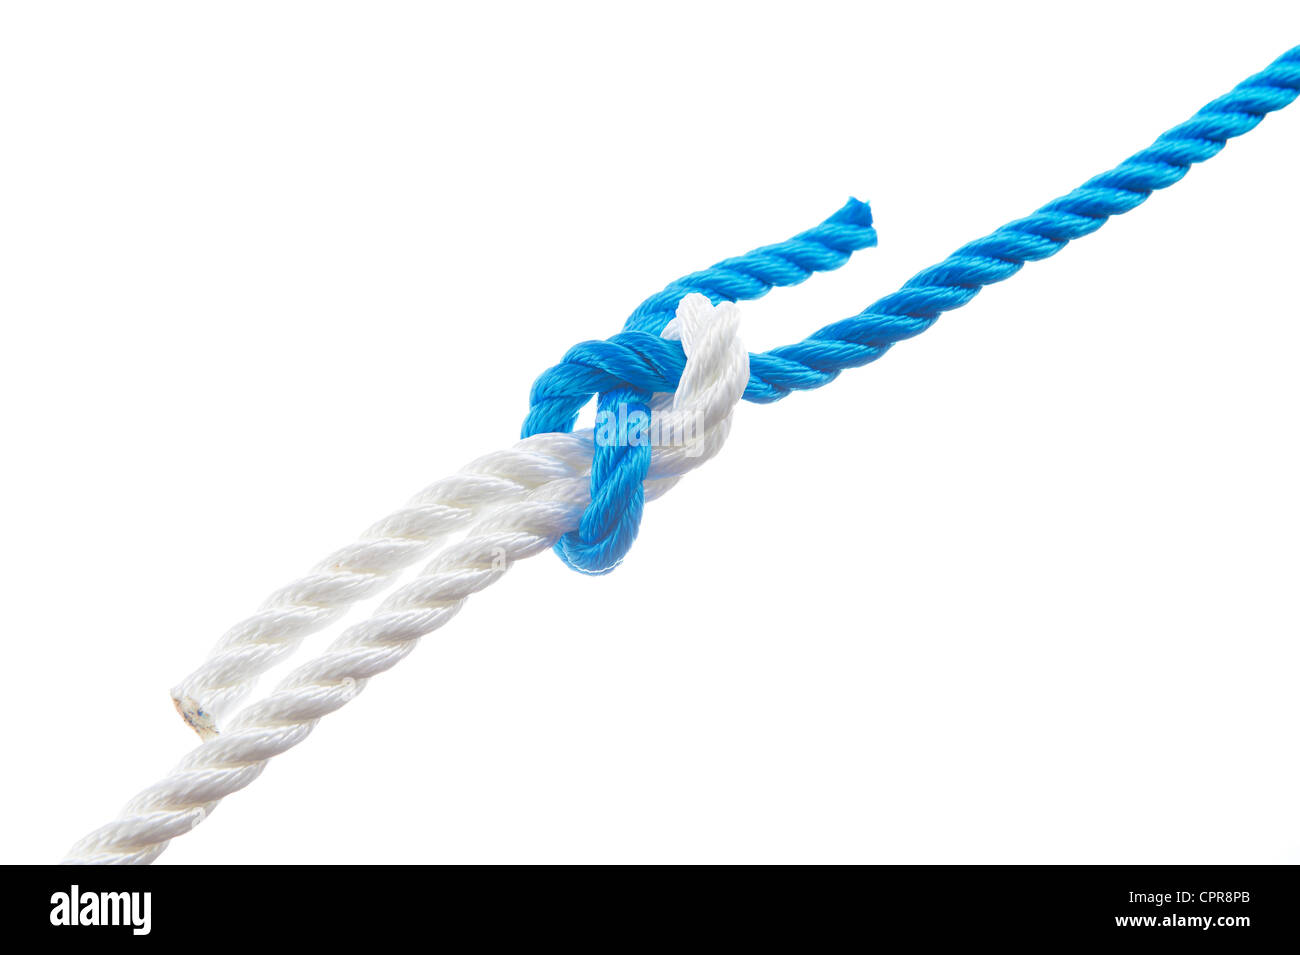 Sheet bend isolated on white background - Stock Image